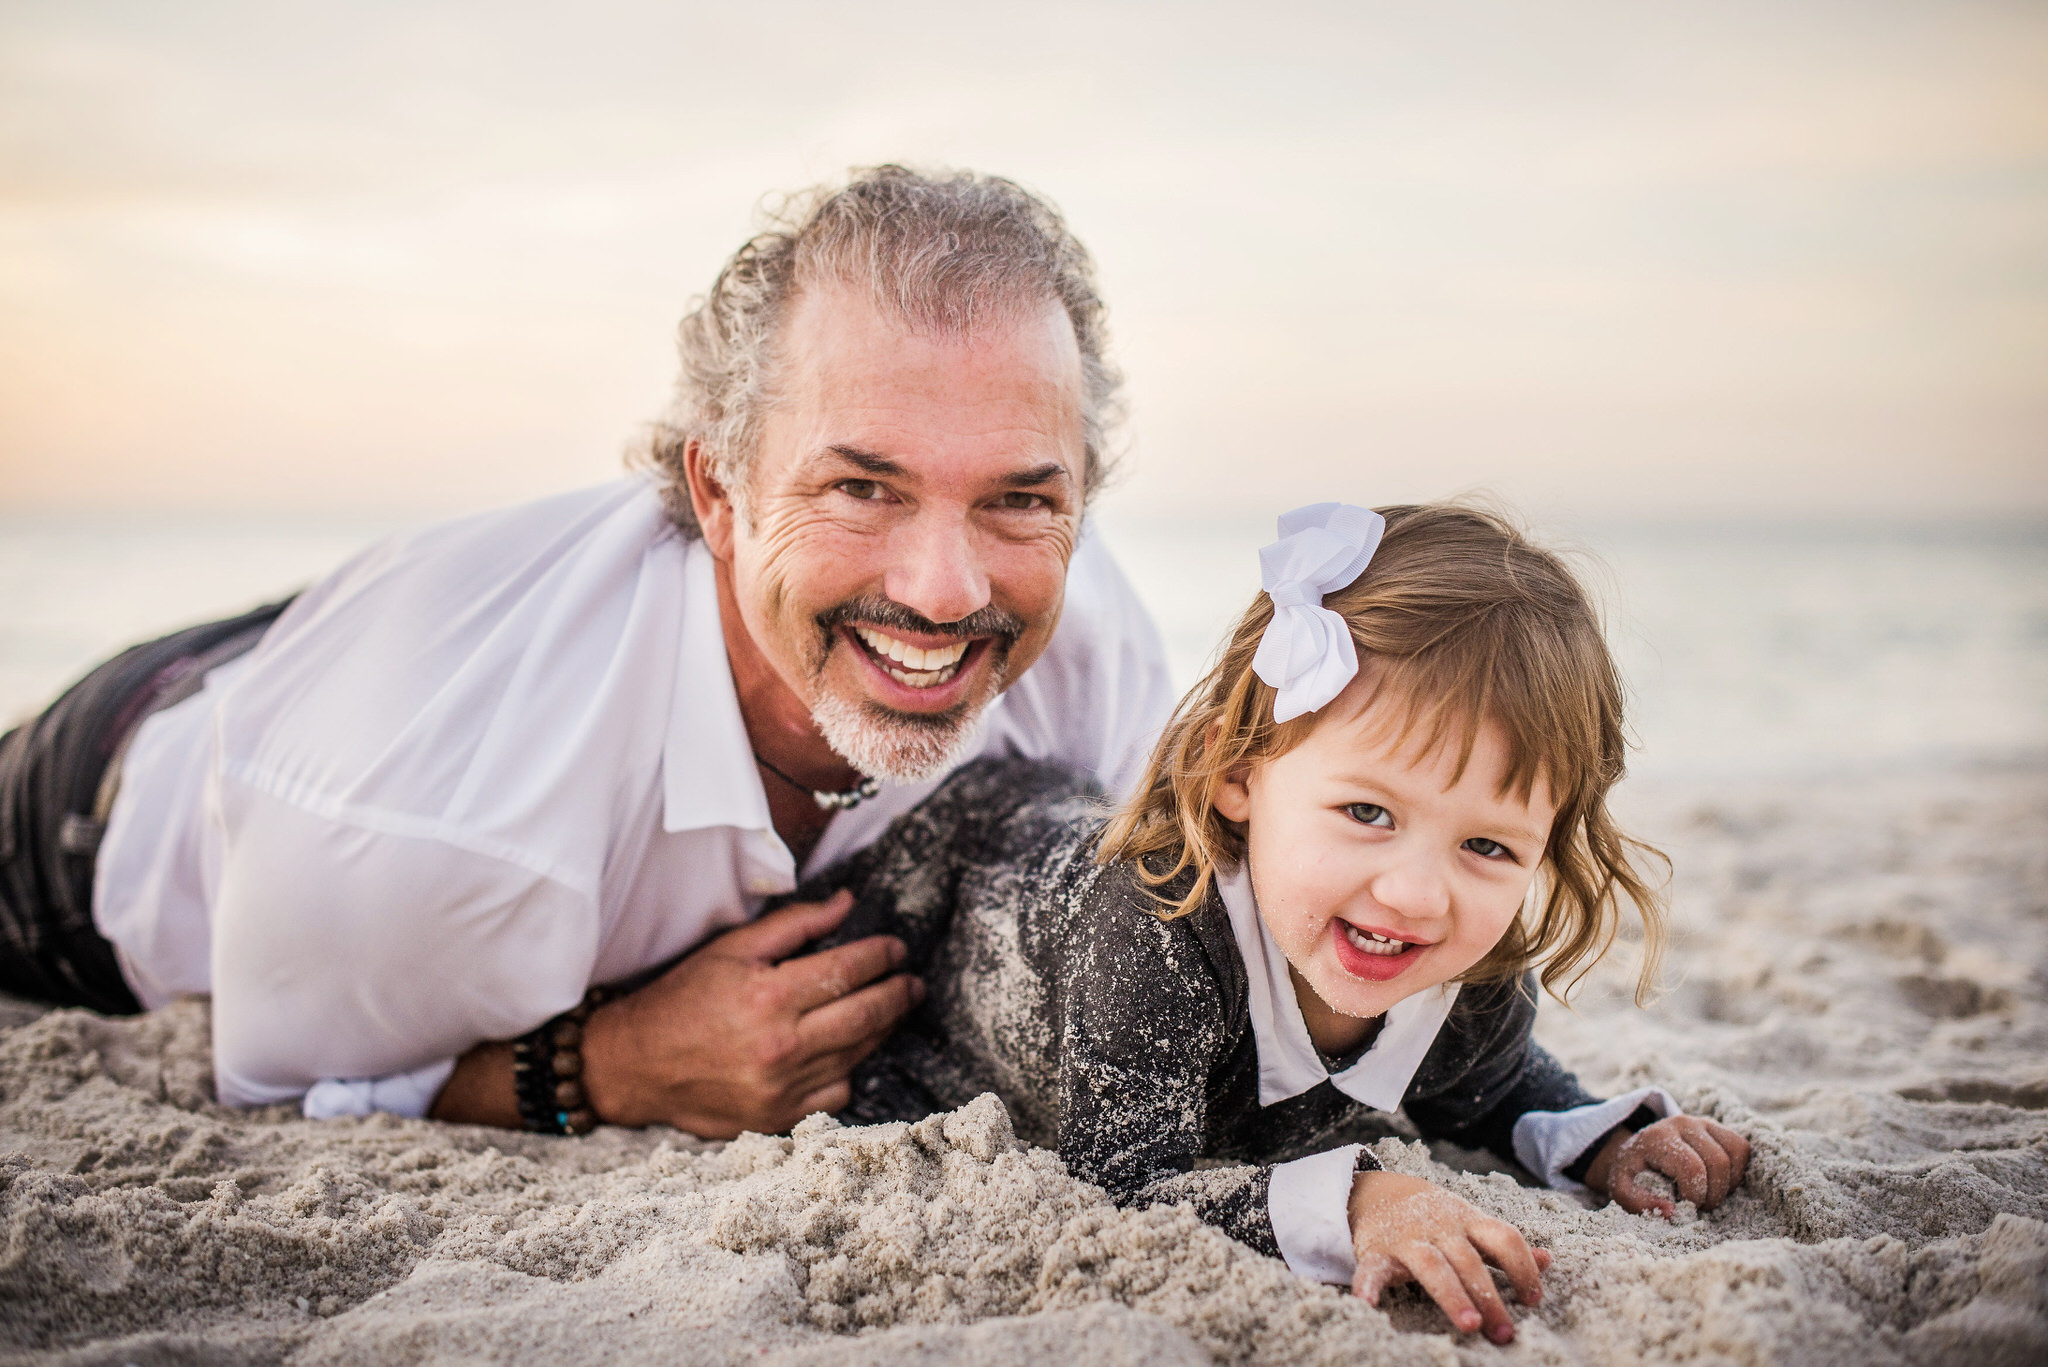 Naples Beach family Photography by Zee Anna Photography